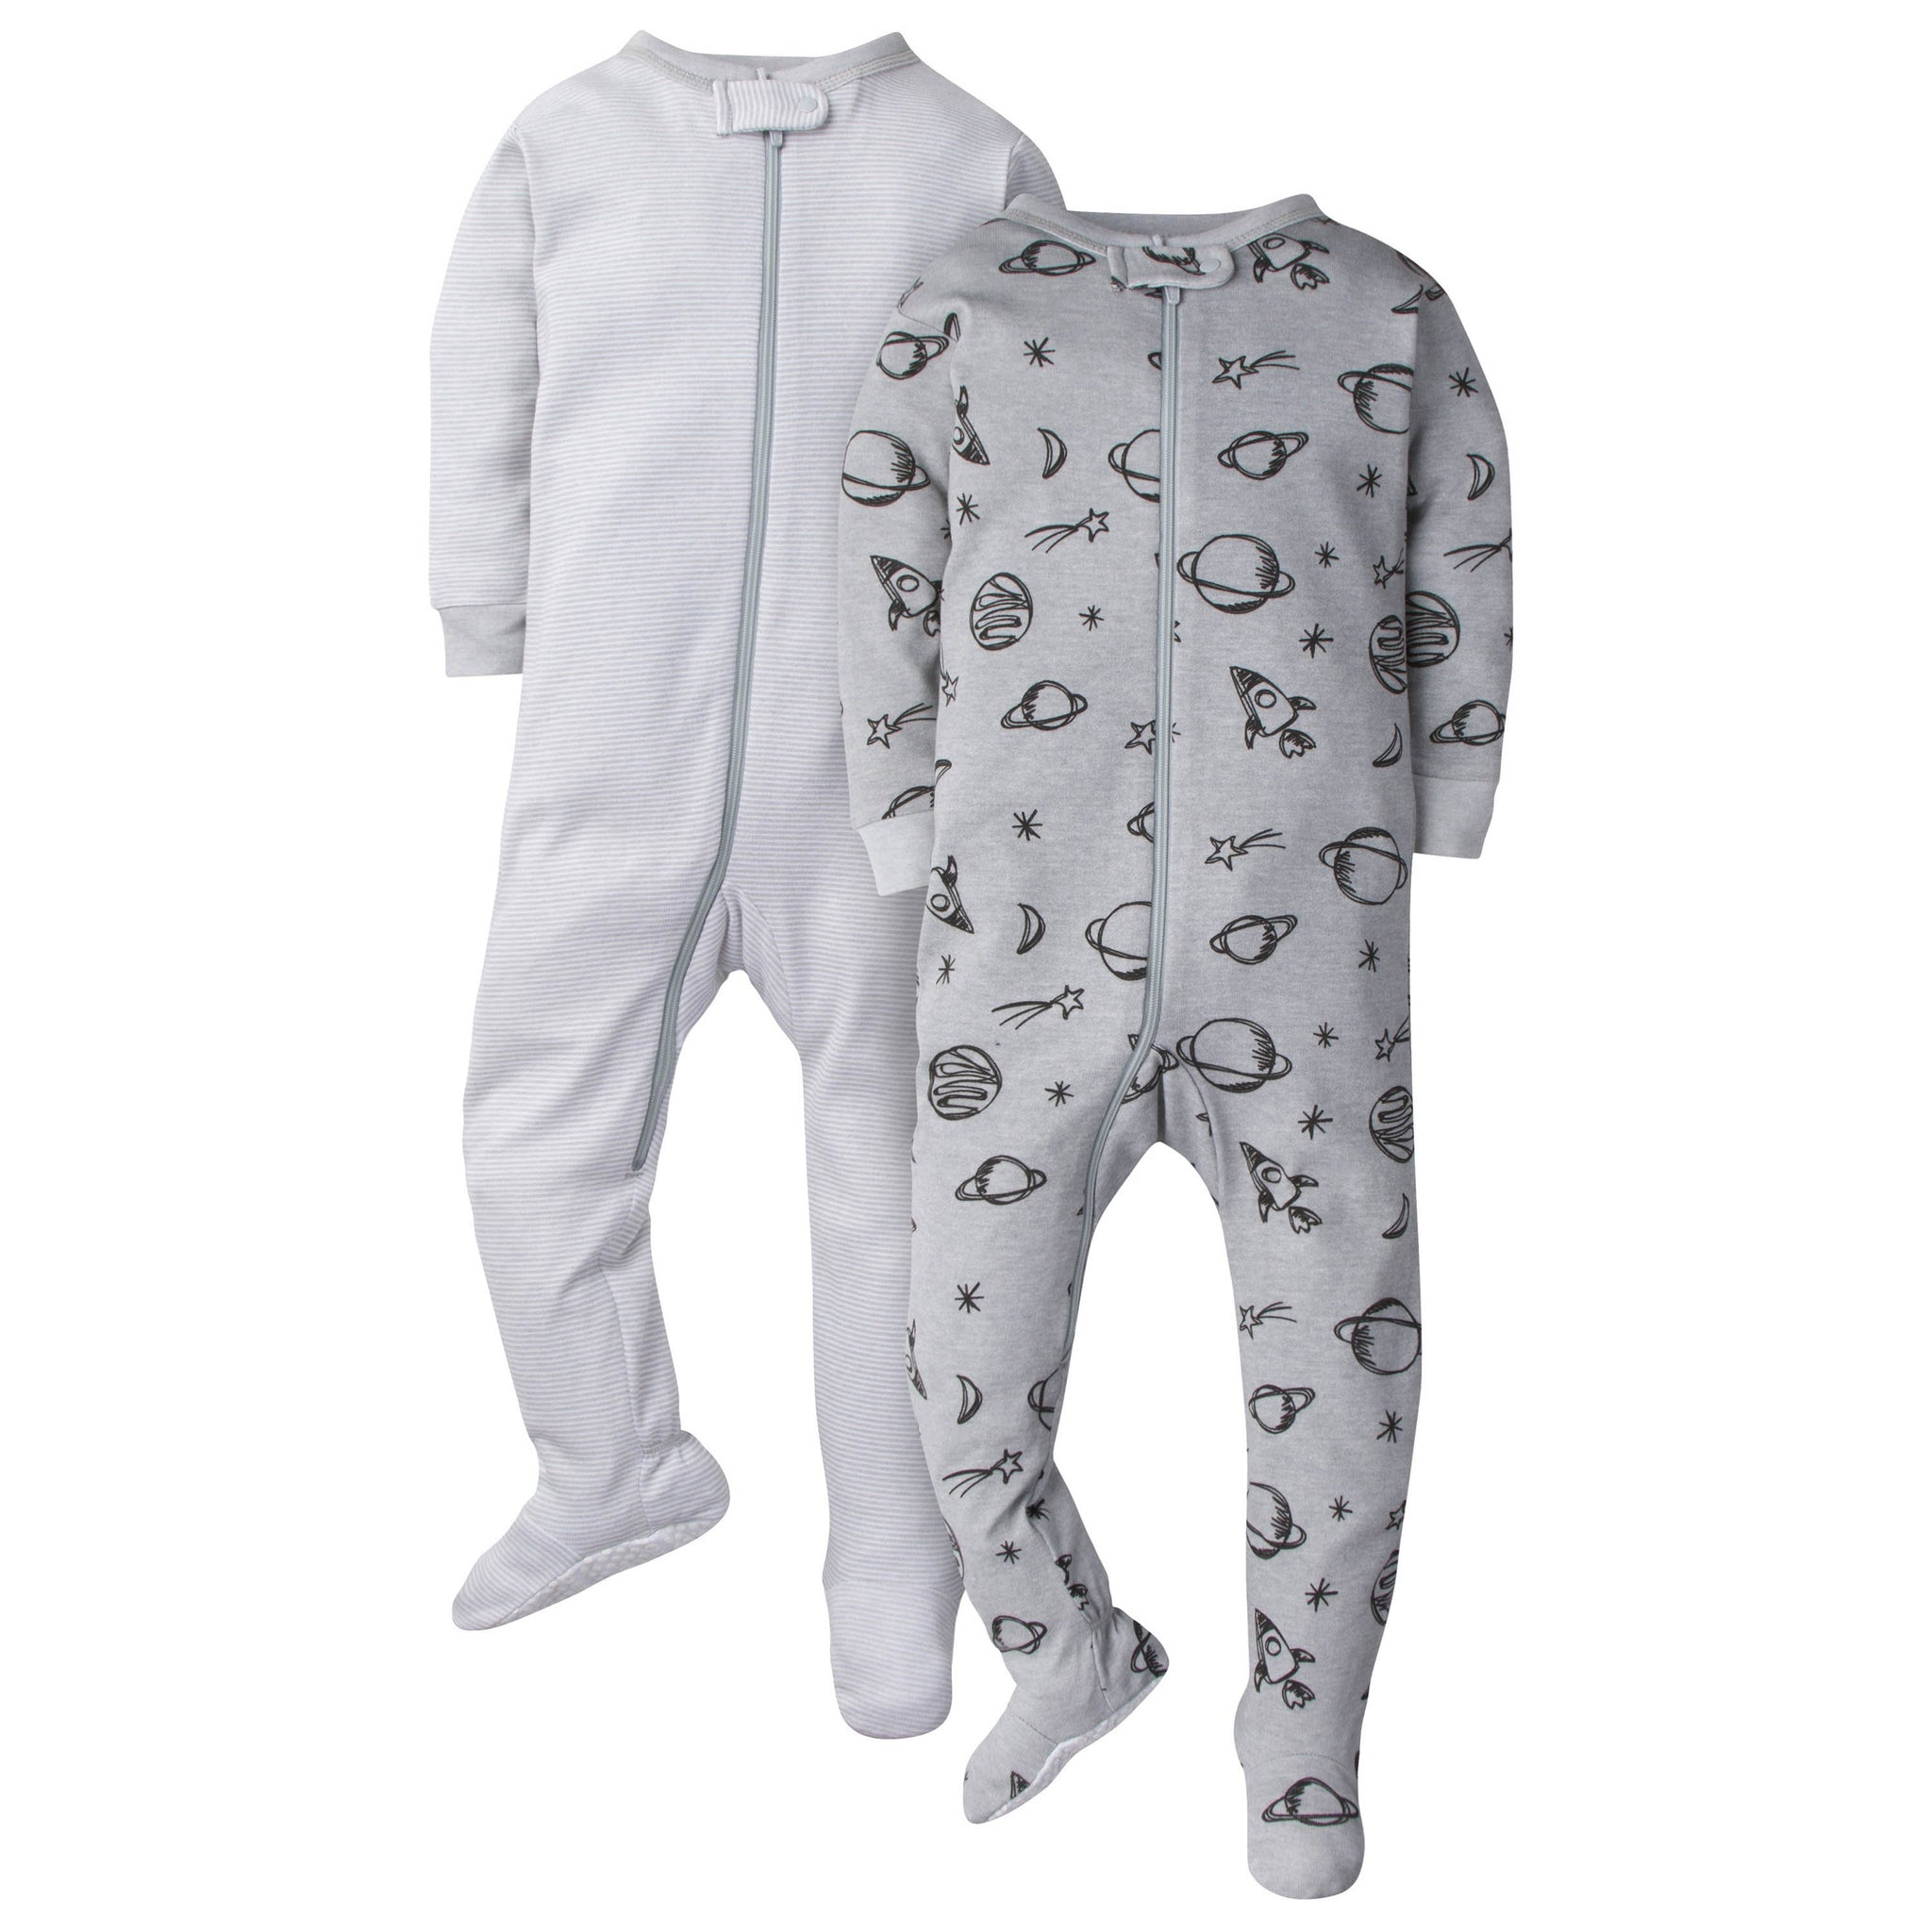 2-Pack Baby Boys Footed Union Suits - Universe